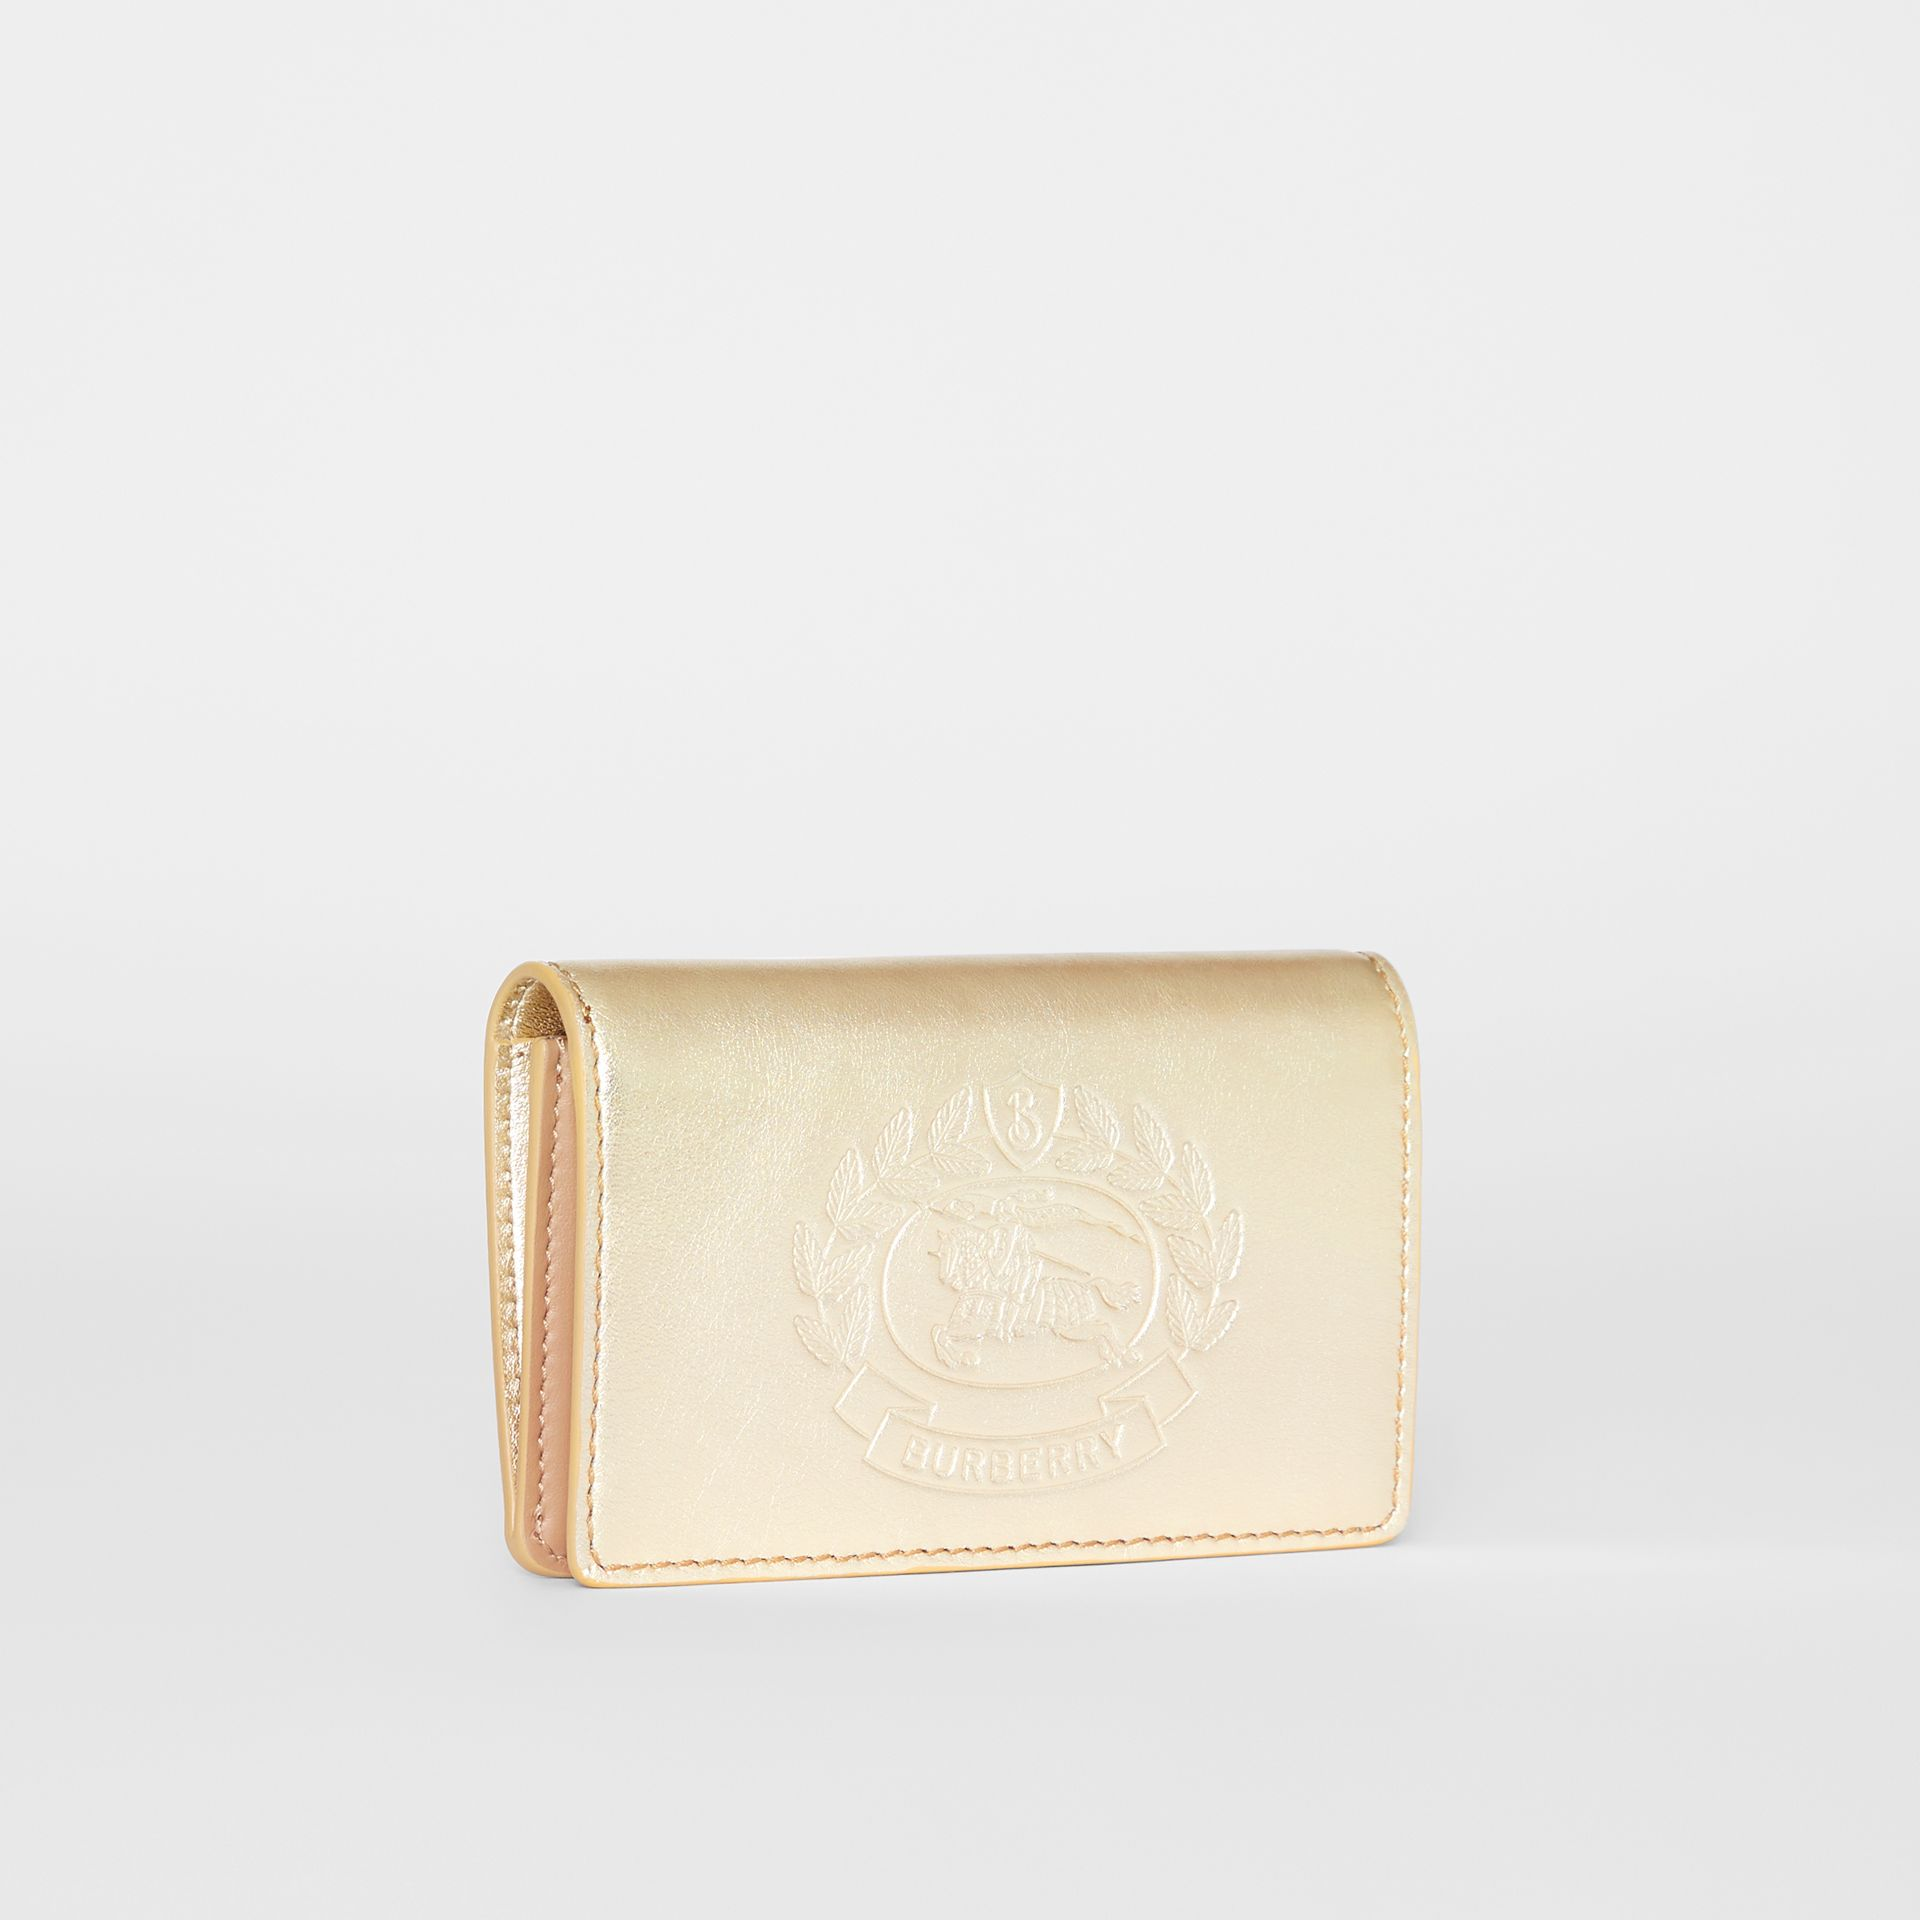 Small Embossed Crest Metallic Leather Wallet in Gold - Women | Burberry Singapore - gallery image 4